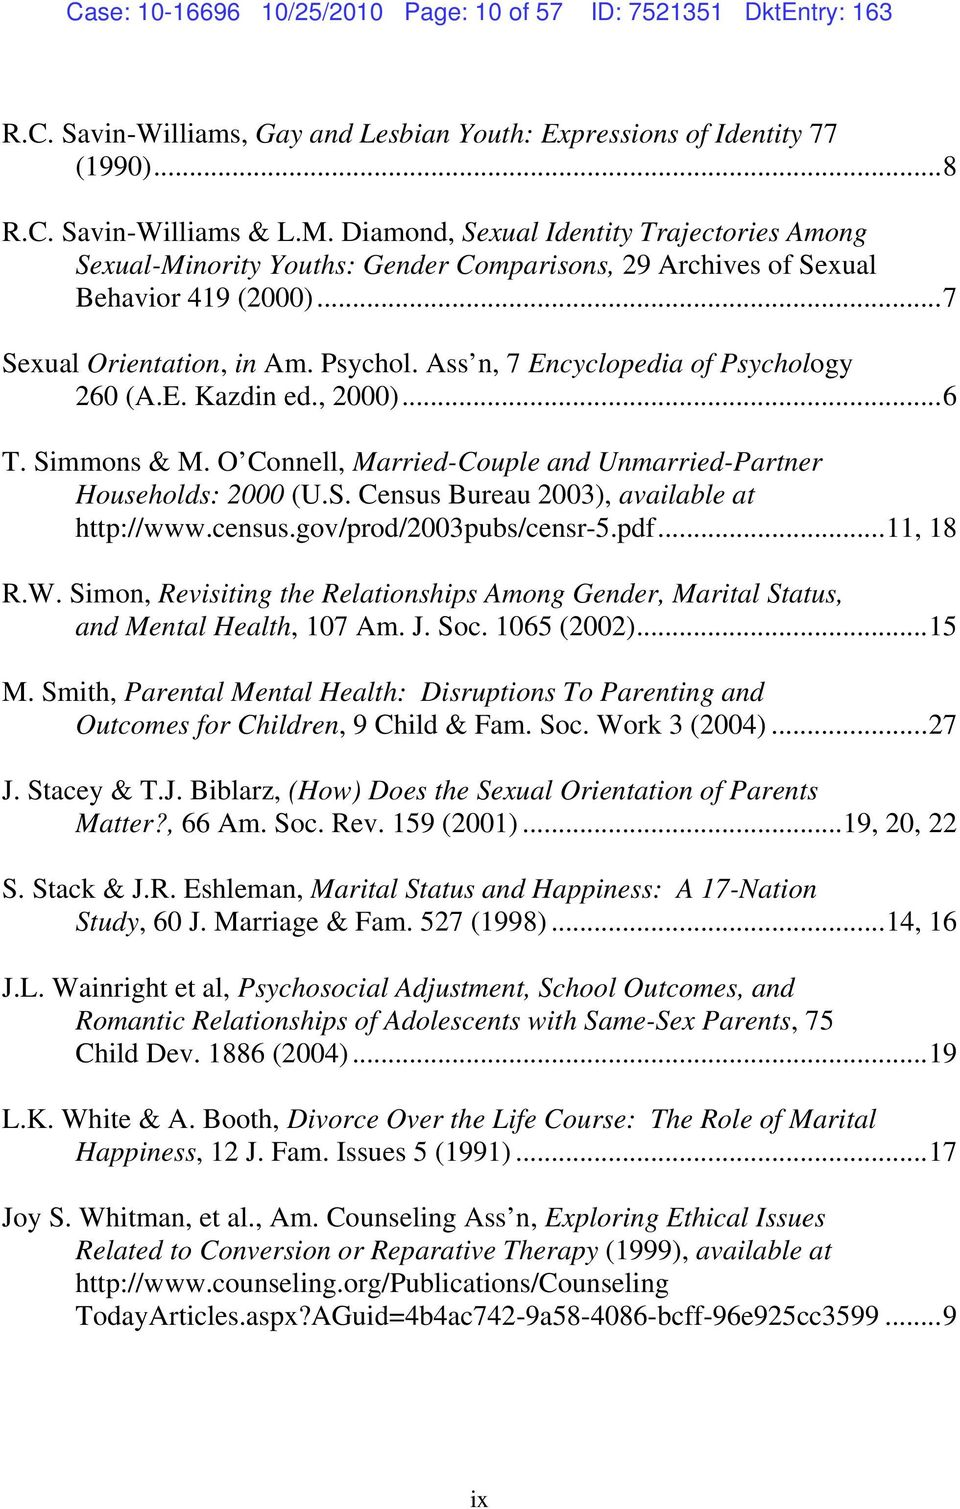 Ass n, 7 Encyclopedia of Psychology 260 (A.E. Kazdin ed., 2000)...6 T. Simmons & M. O Connell, Married-Couple and Unmarried-Partner Households: 2000 (U.S. Census Bureau 2003), available at http://www.